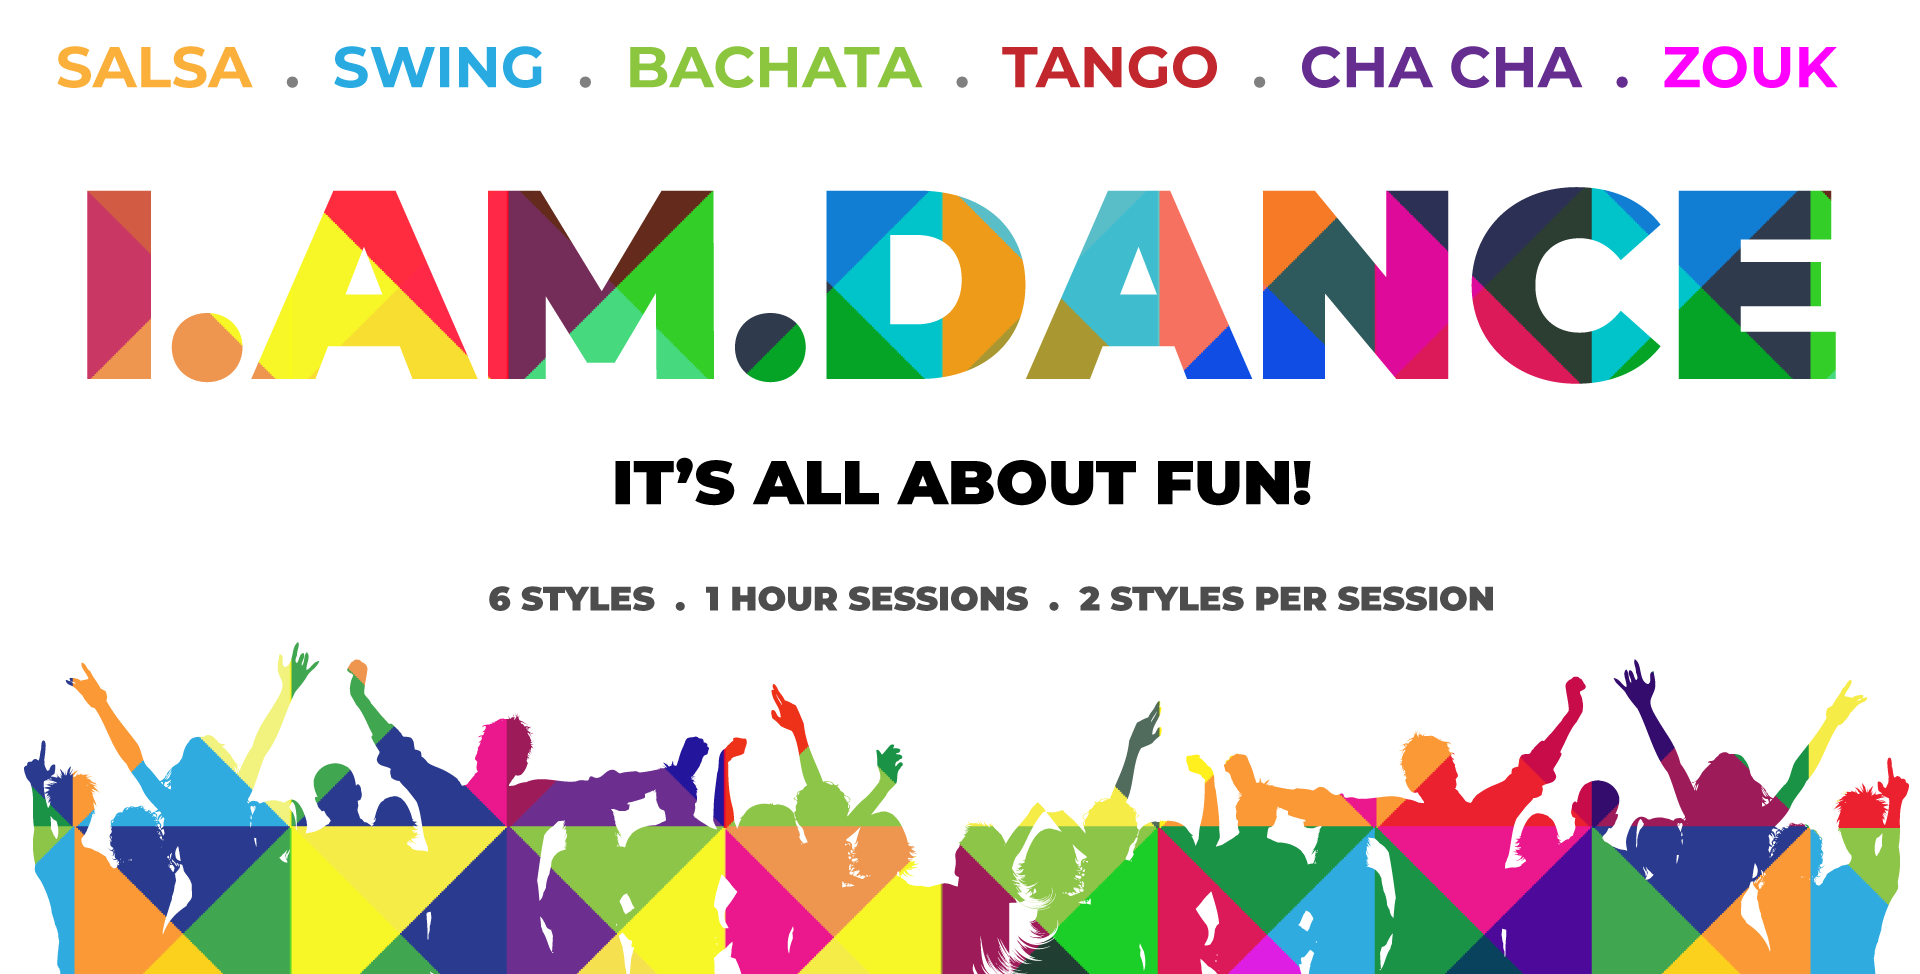 iamdance - Lots of styles so much fun - Salsa, milonga,